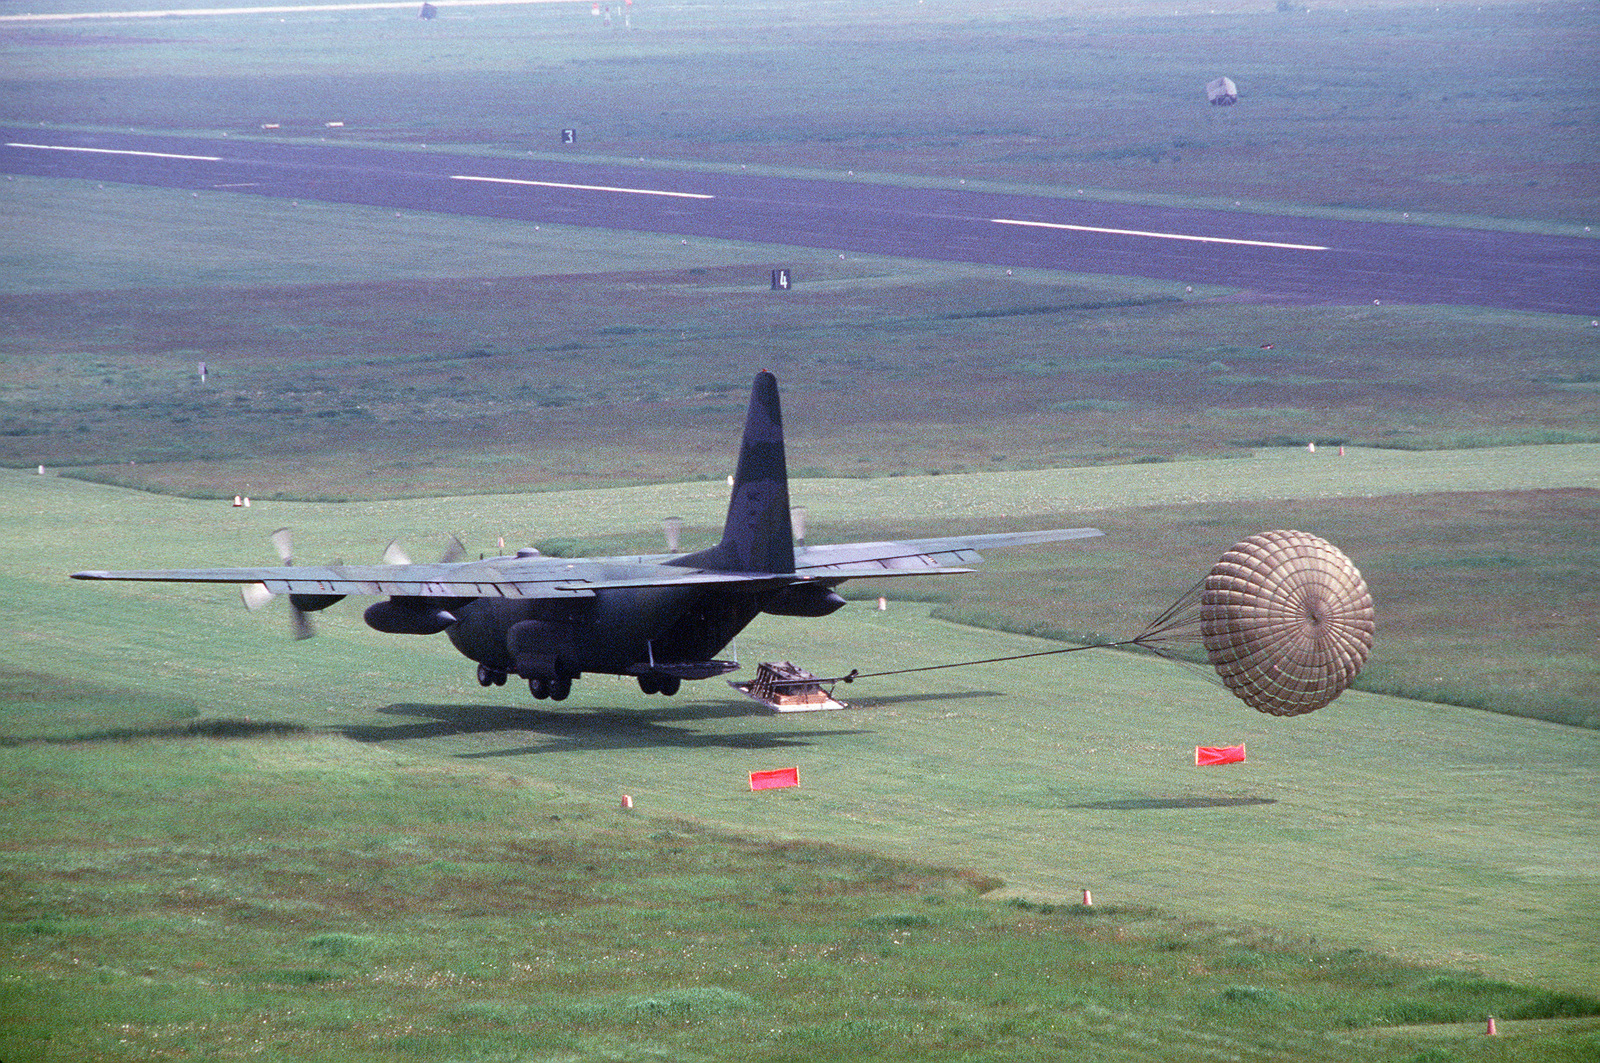 A 37th Tactical Airlift Squadron C-130E Hercules aircraft delivers cargo by a low altitude parachute extraction system (LAPES) airdrop at Templehof Central Airport during a demonstration